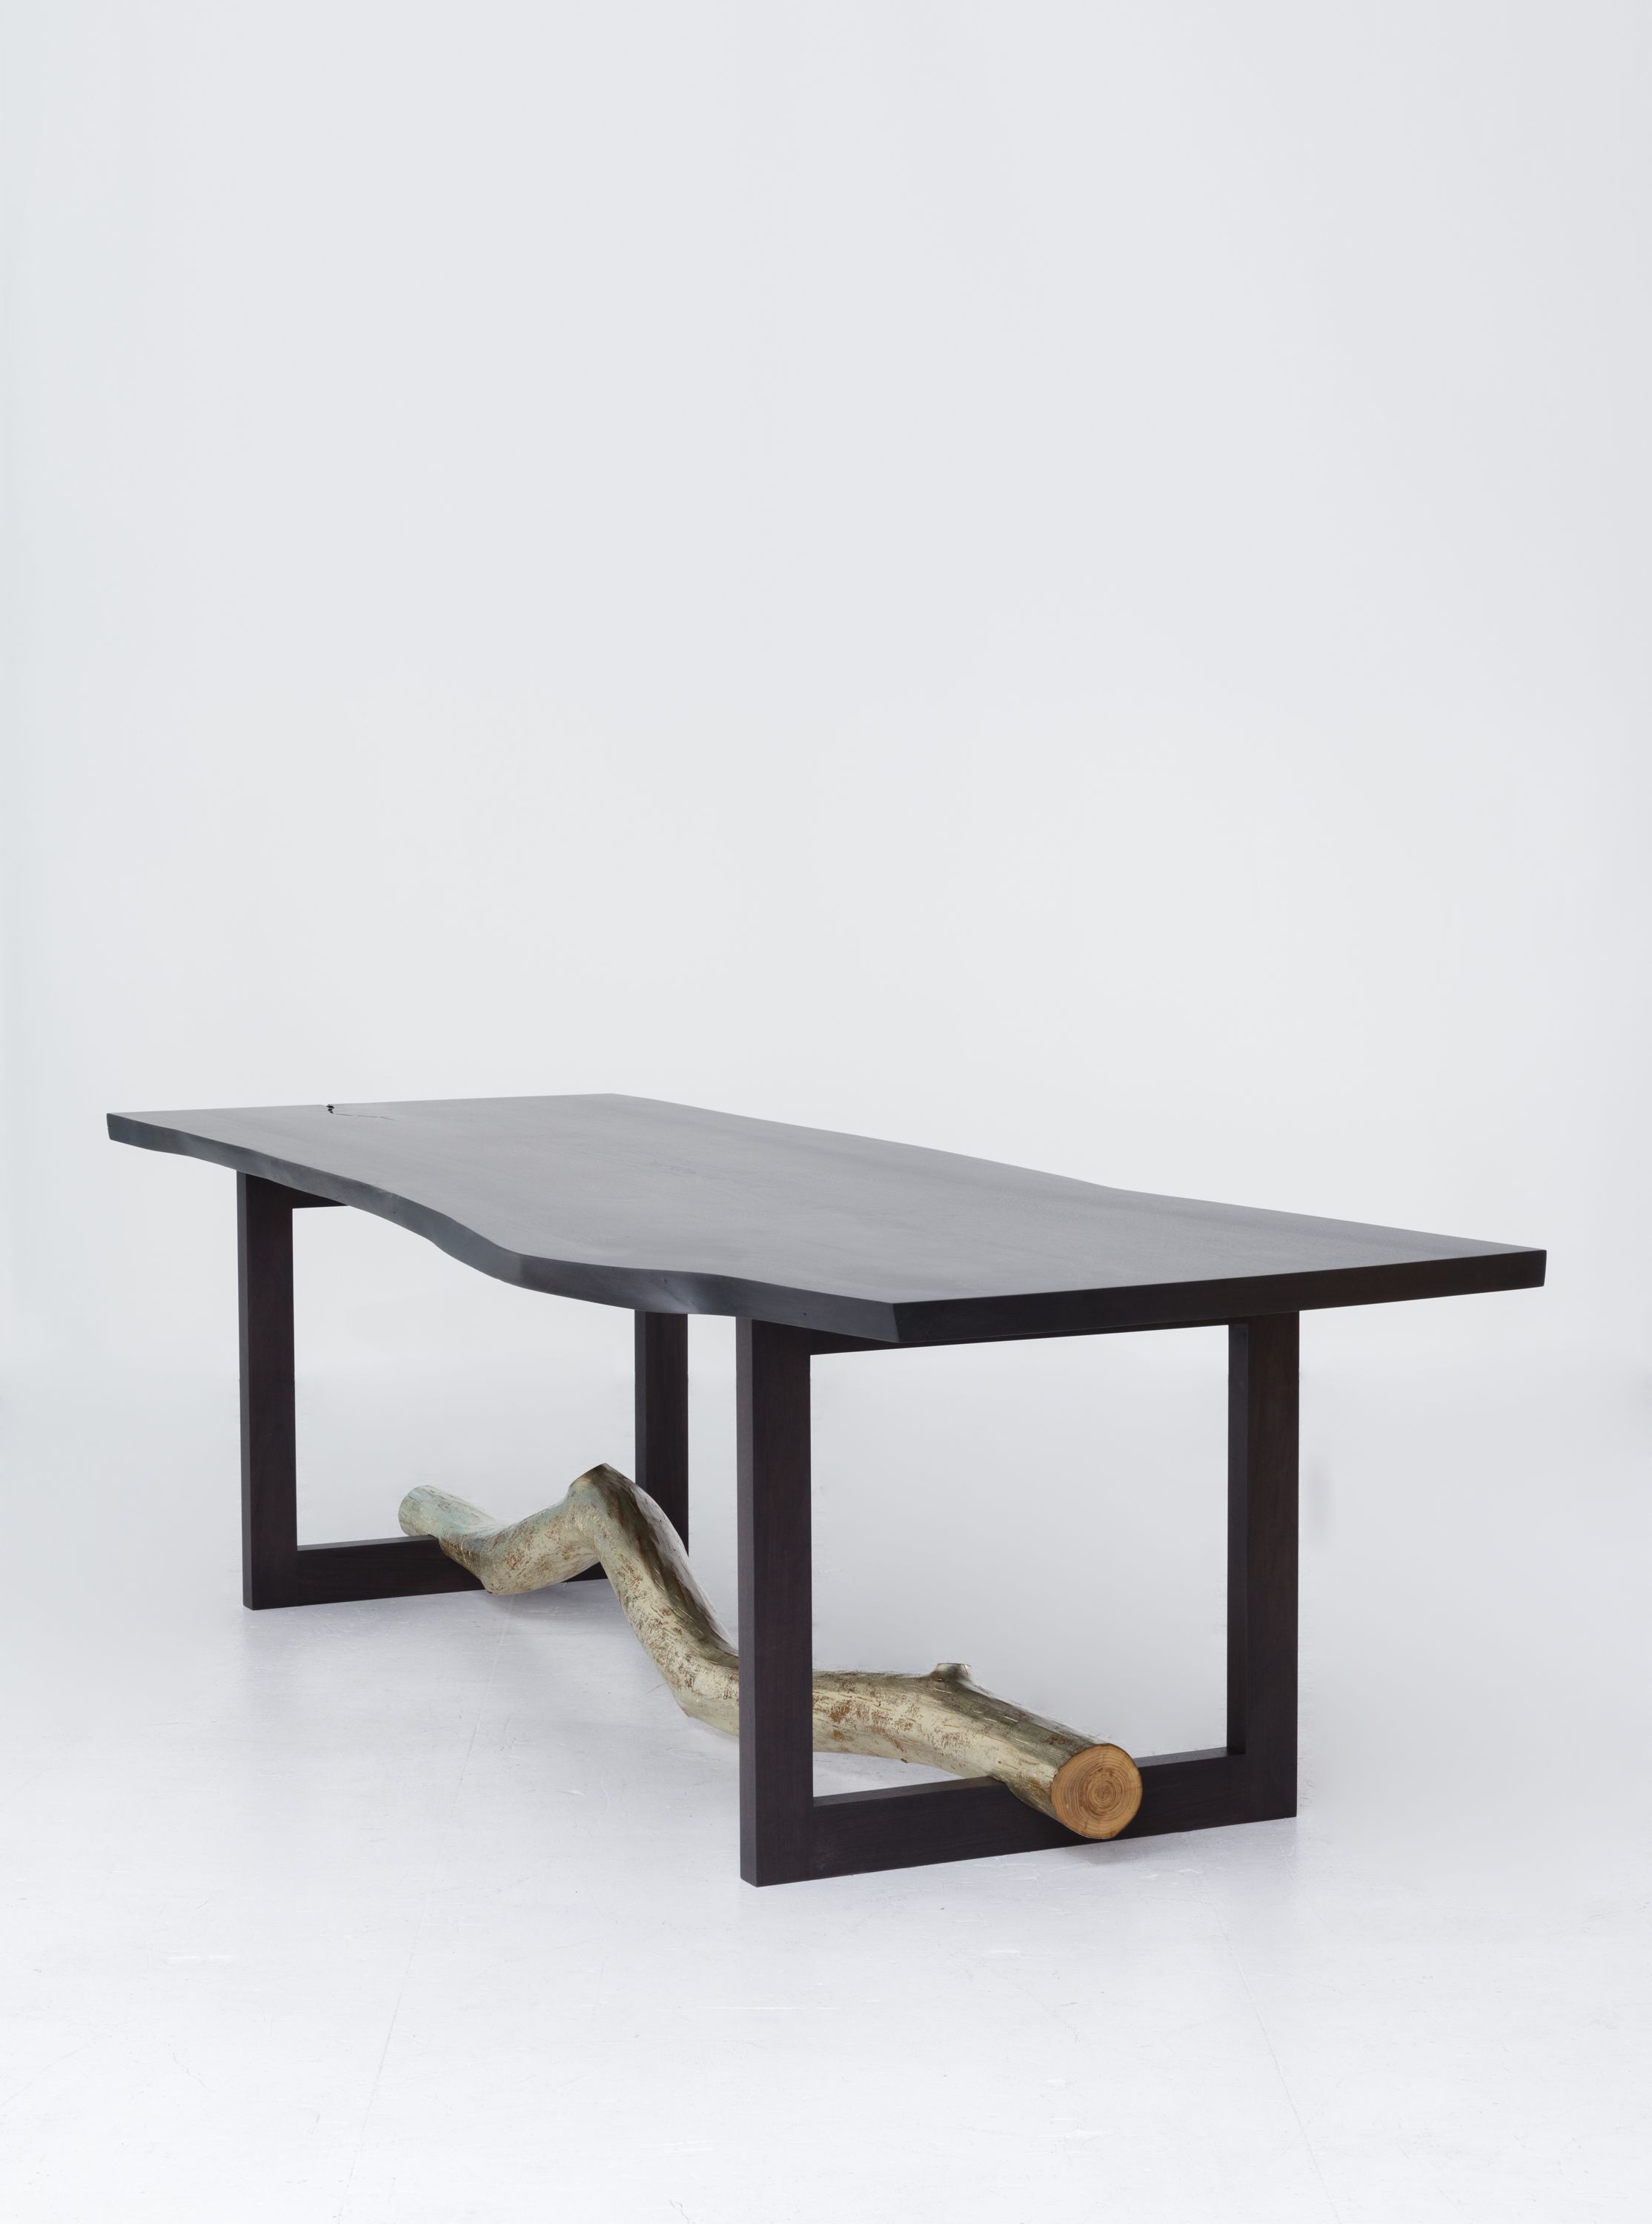 Dining table image by Ralph Pucci International on Artists